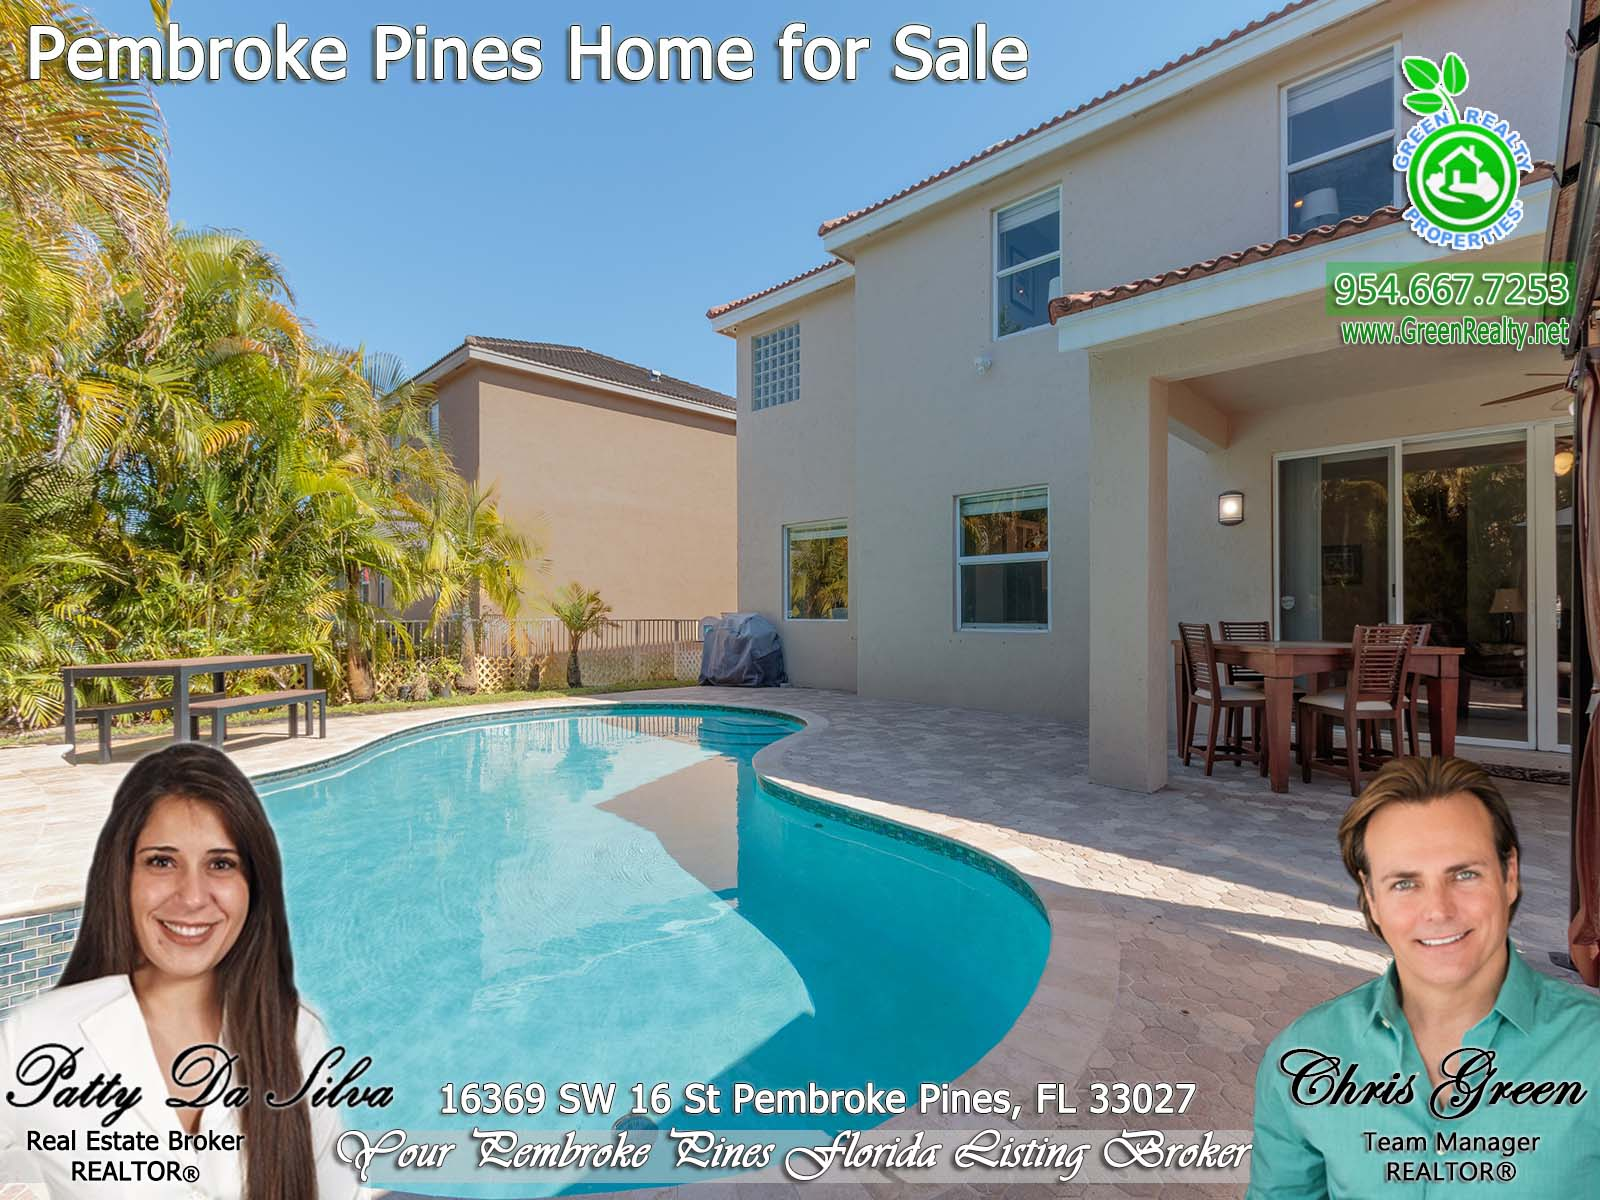 23 Pembroke Pines Realtor Broker Patty Da Silva south florida listing (23)